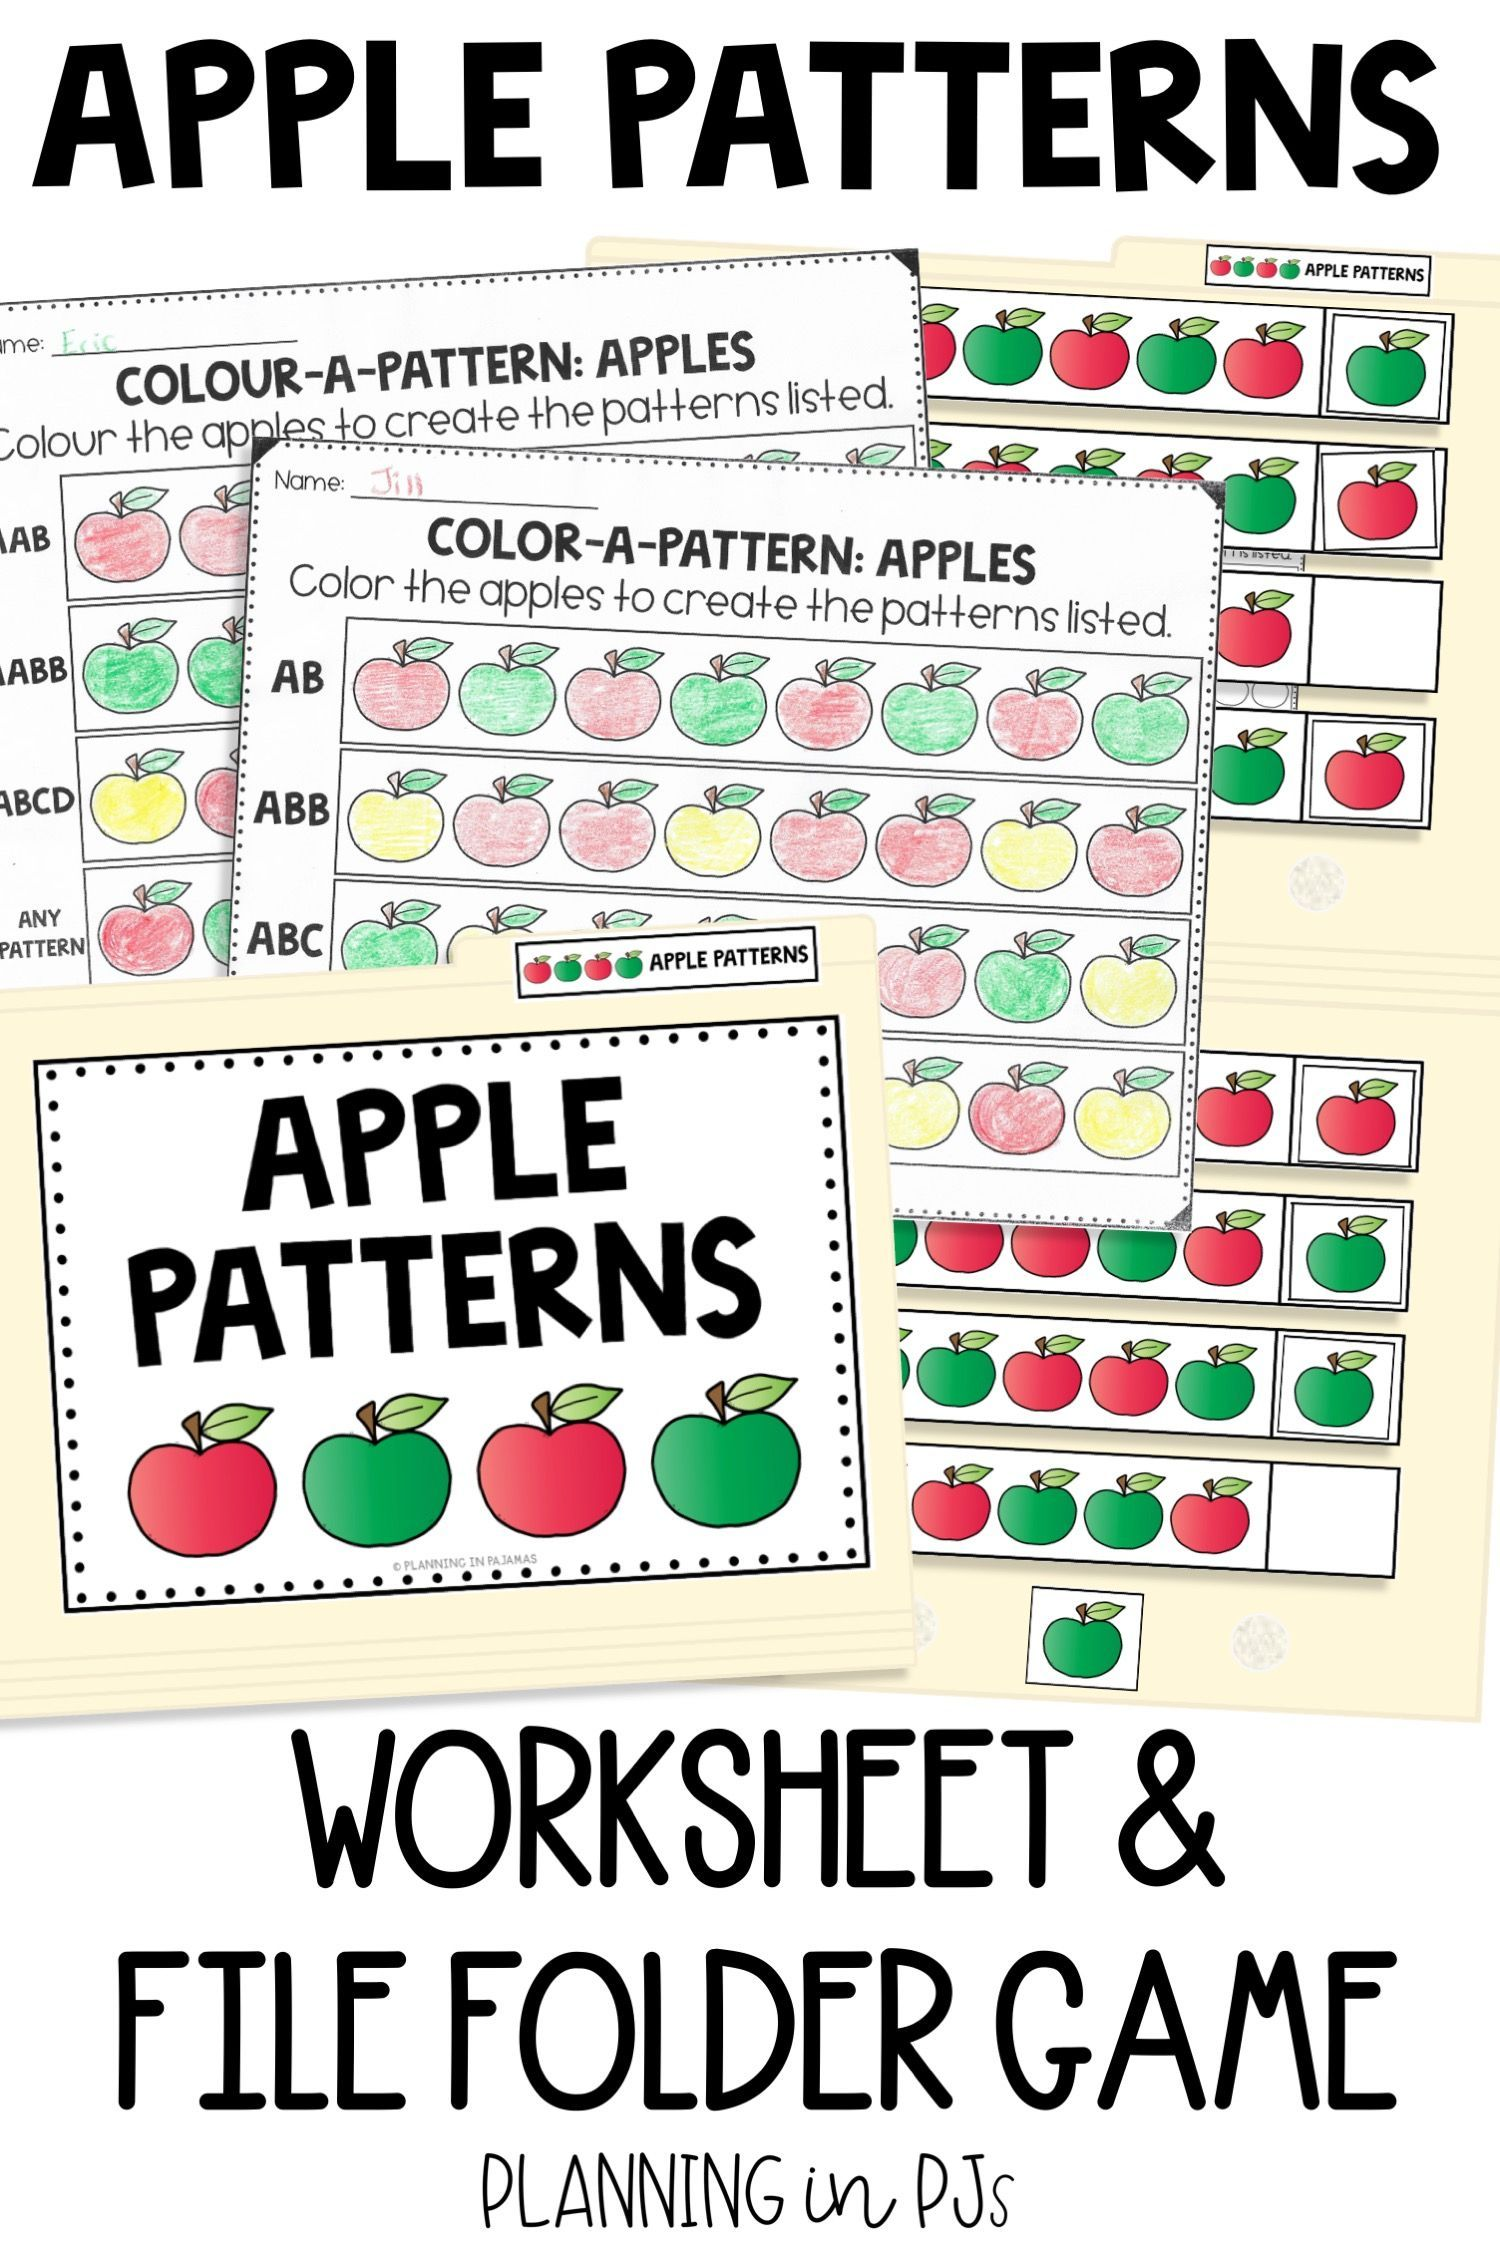 Pattern Practice With An Apples Theme Ab Abb Abc And Create Your Own Pattern With These Color A P Pattern Worksheet File Folder Games Preschool Folder Games [ 2249 x 1500 Pixel ]